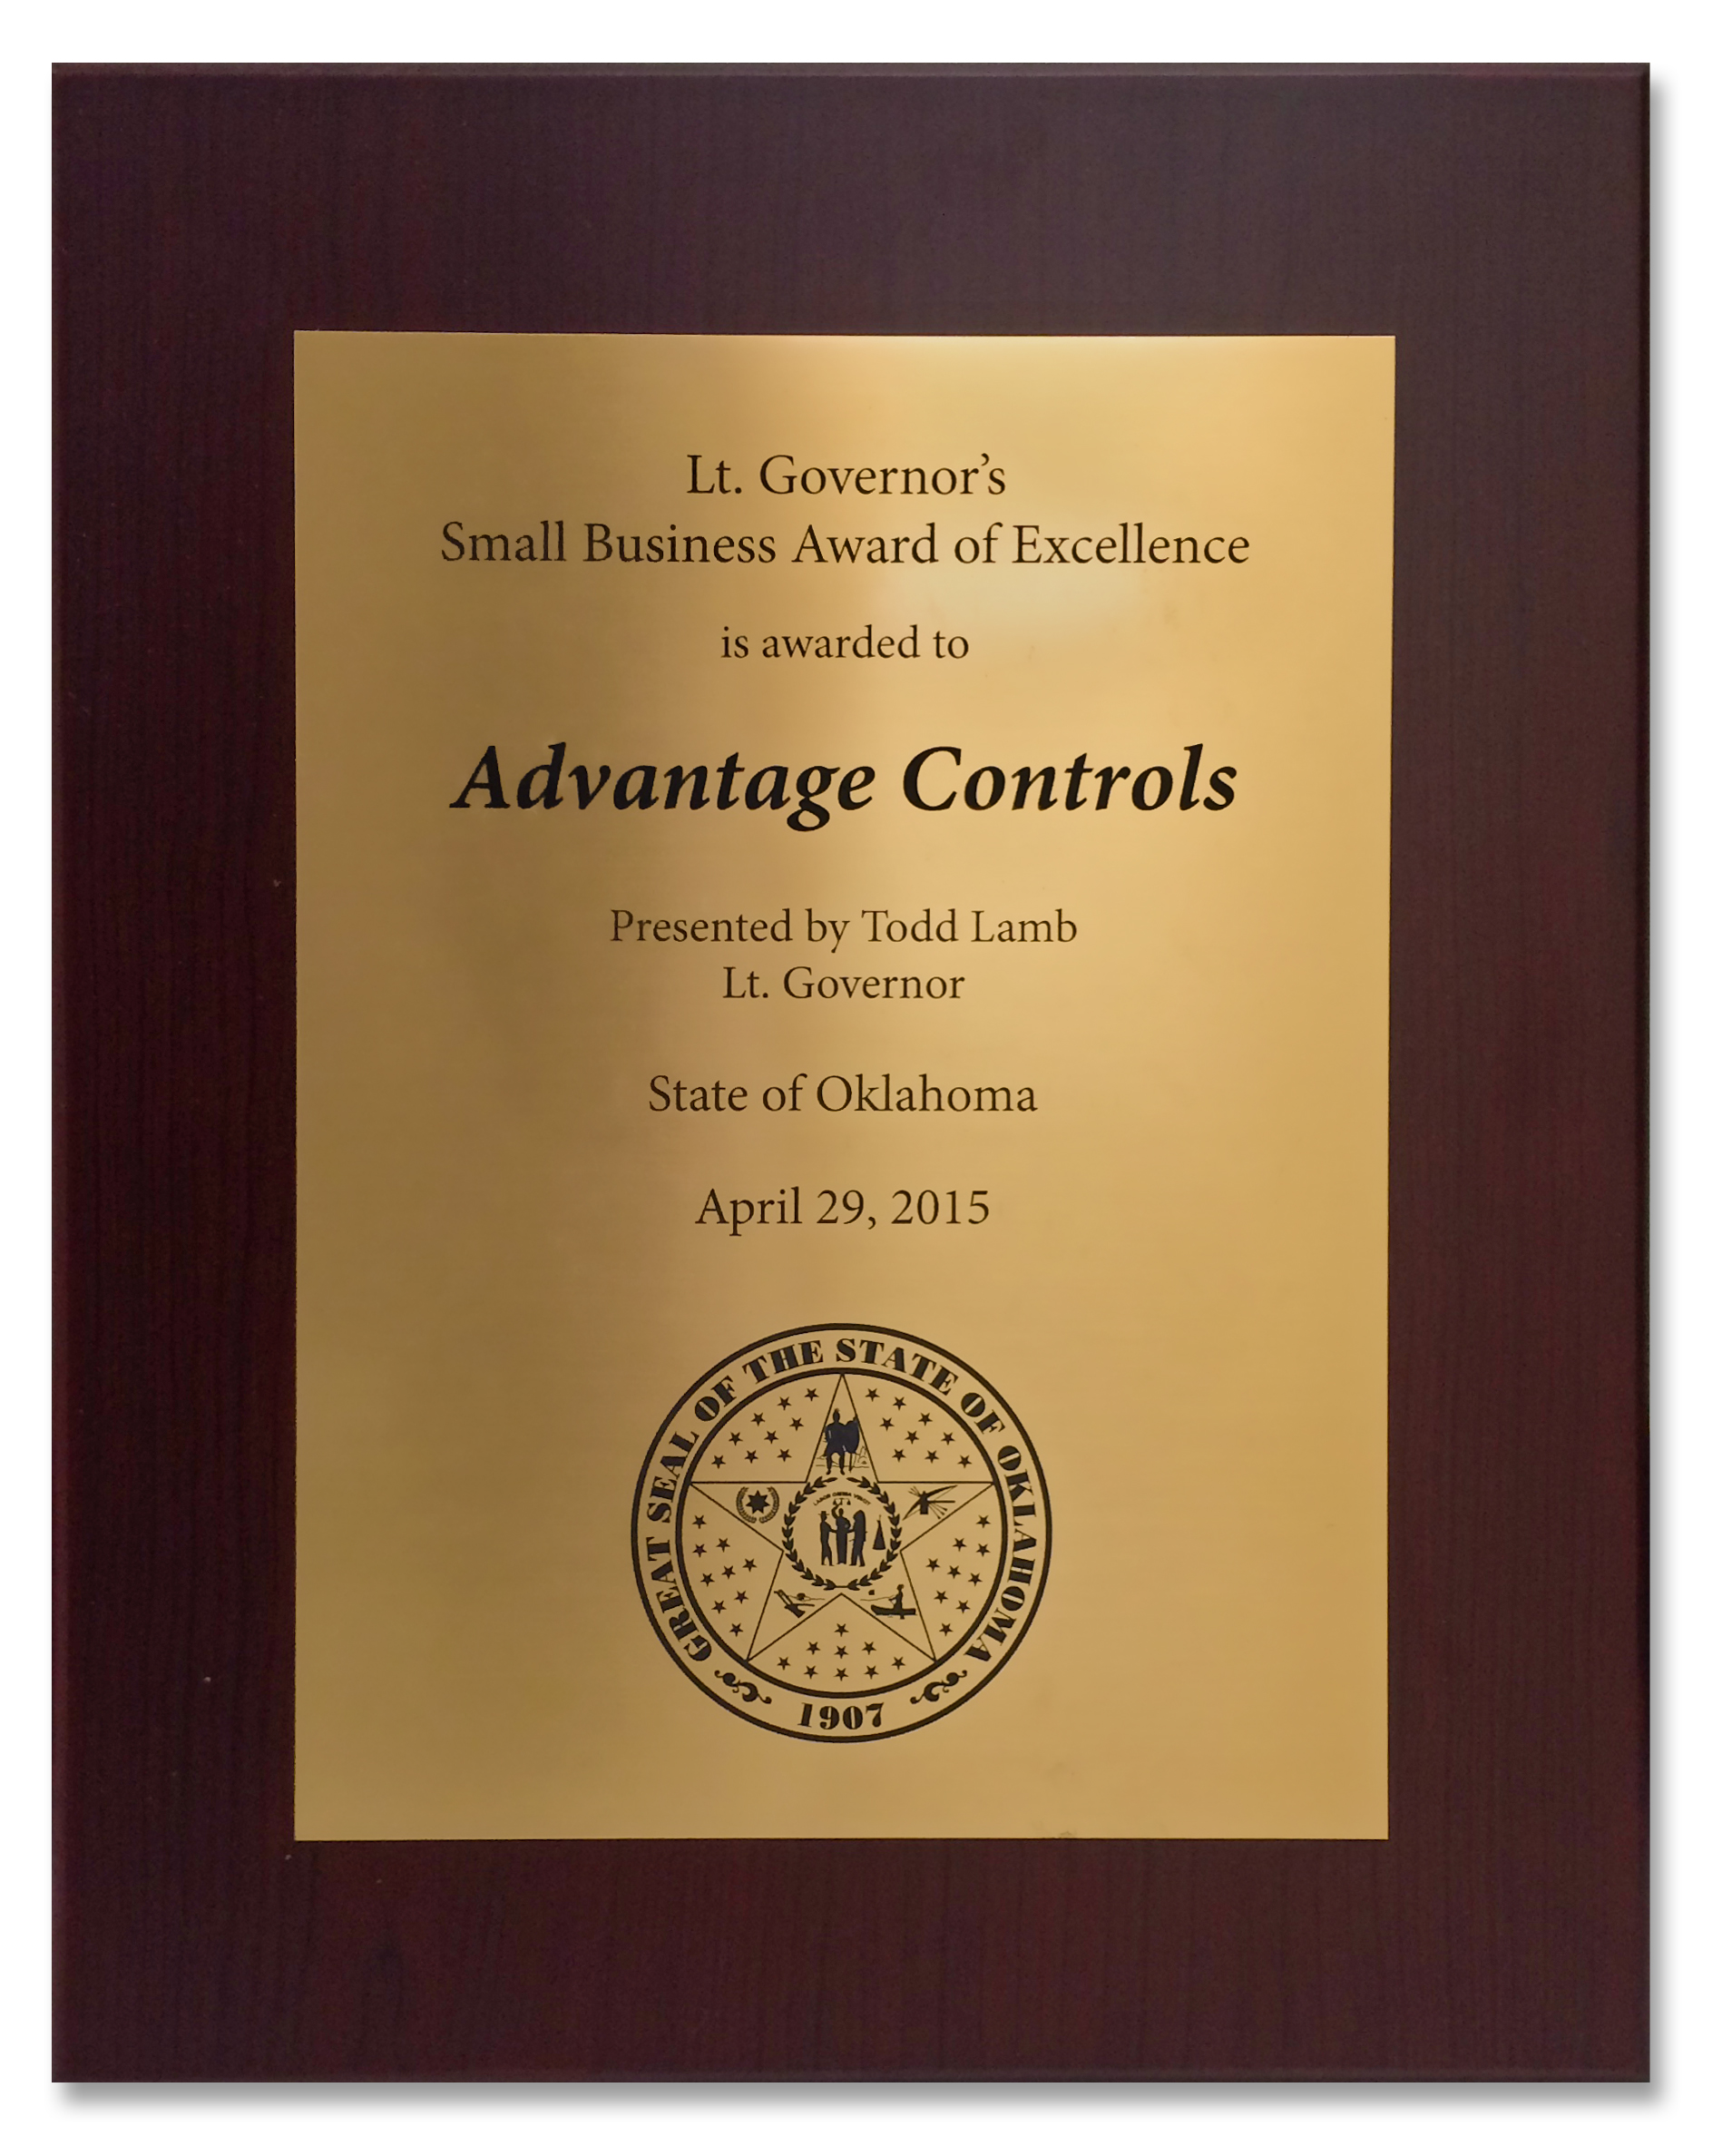 Advantage Controls - Awards and Recognition - industrial